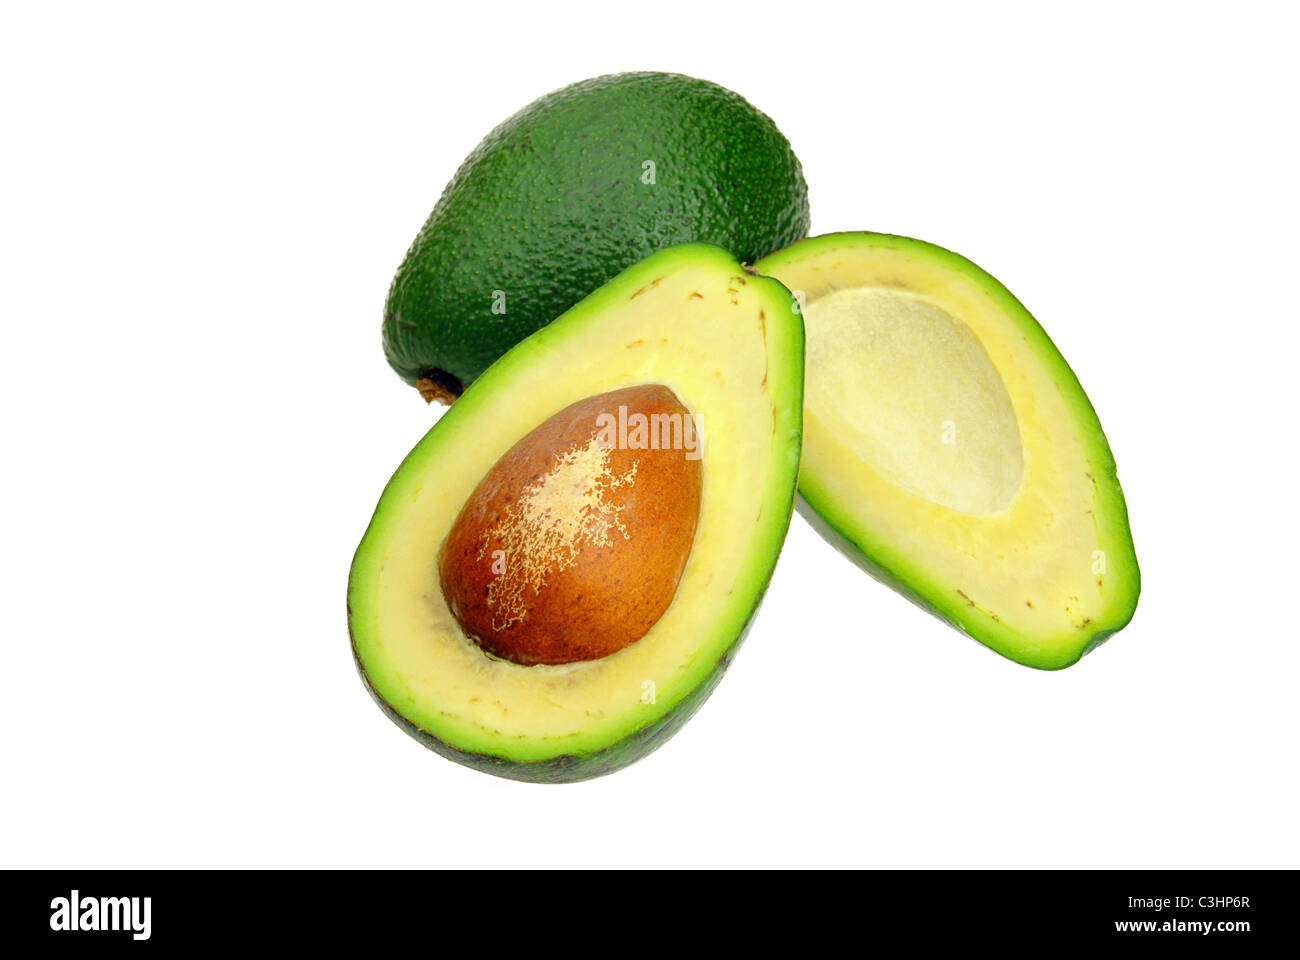 Avocado 05 - Stock Image